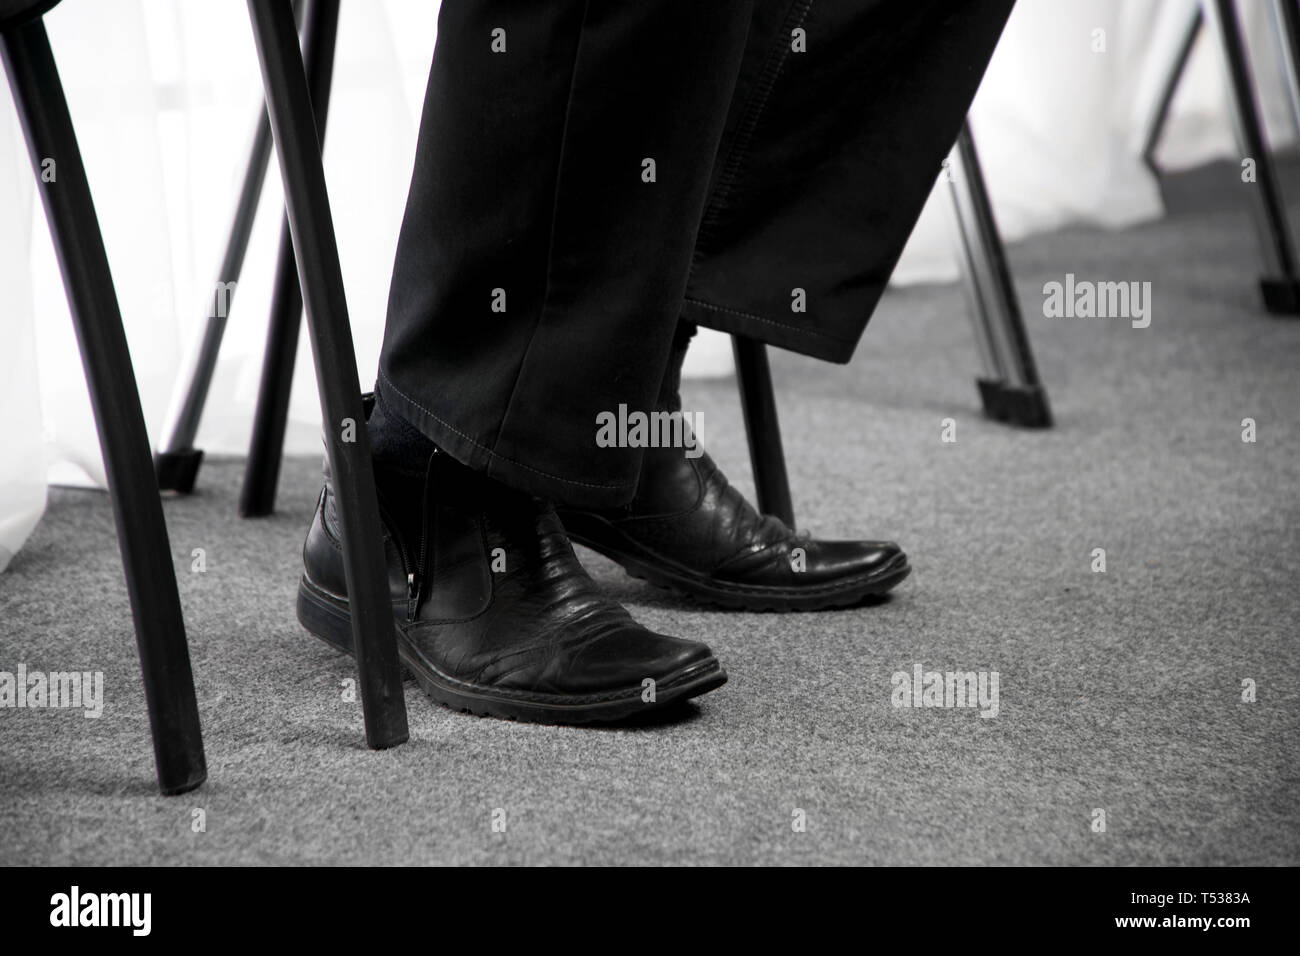 The legs of a man waiting in an office chair in the corridor. Job responsibilities. - Stock Image